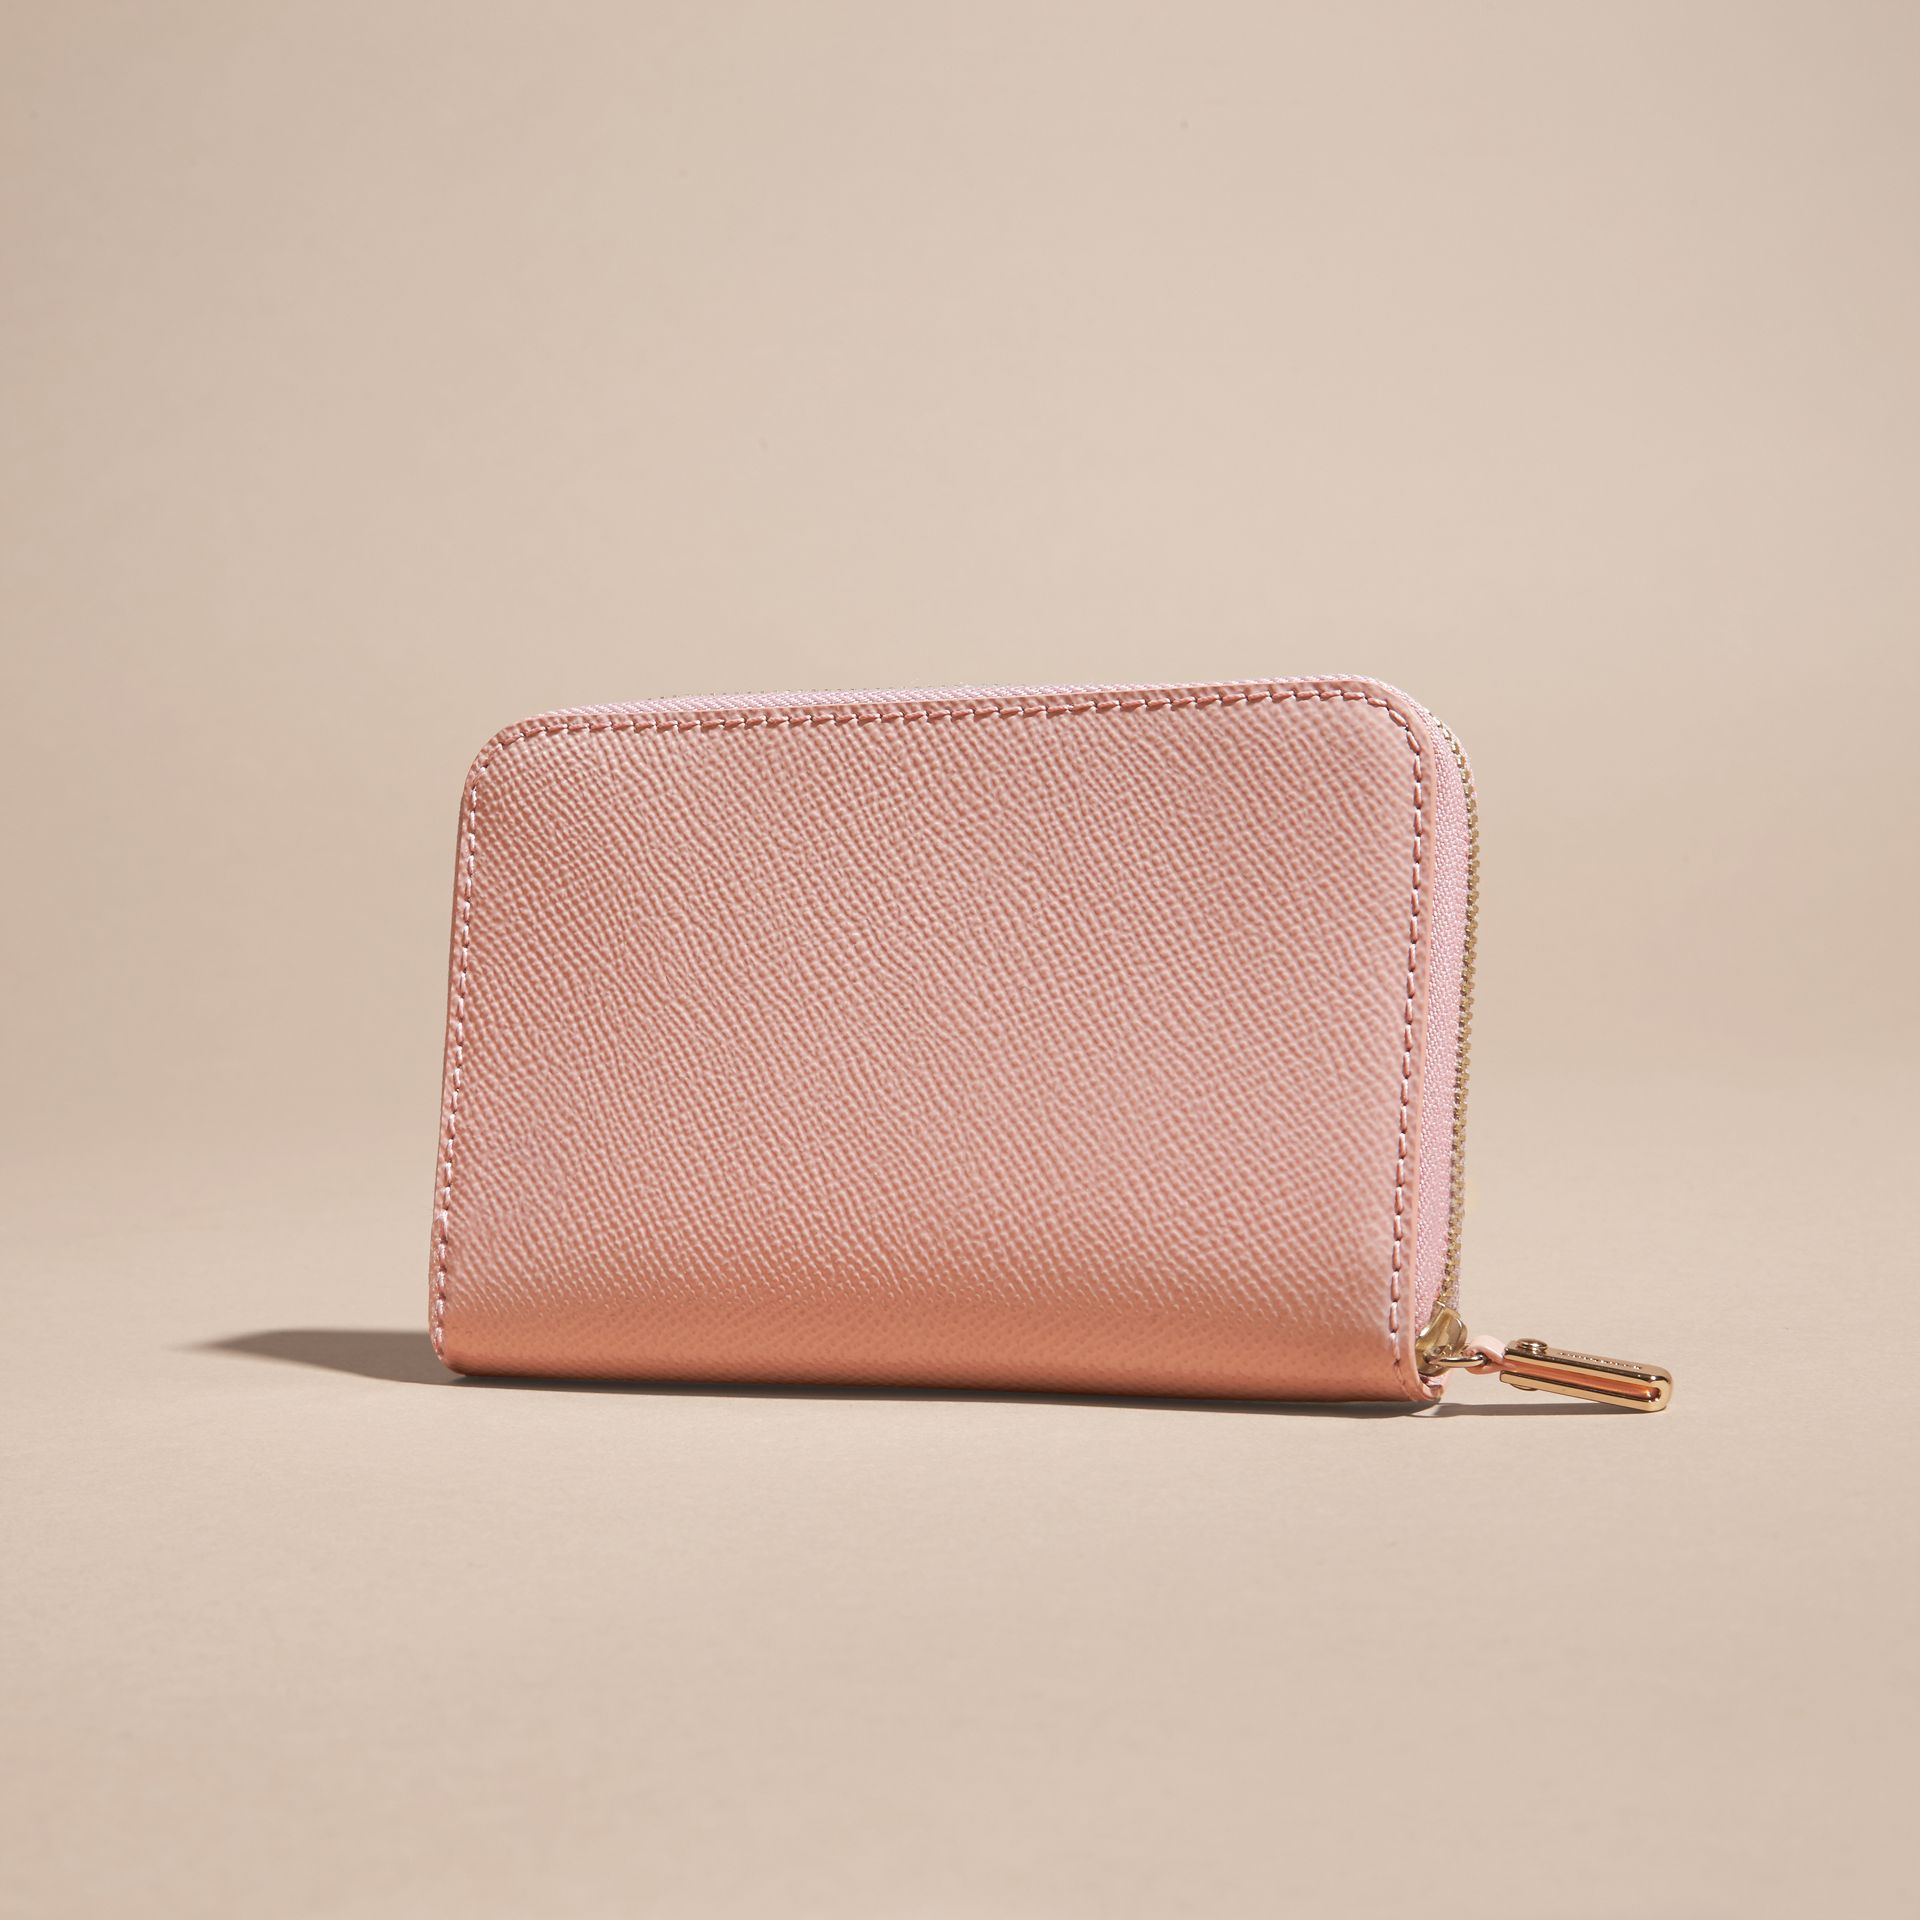 Ash rose Patent London Leather Ziparound Wallet Ash Rose - gallery image 4